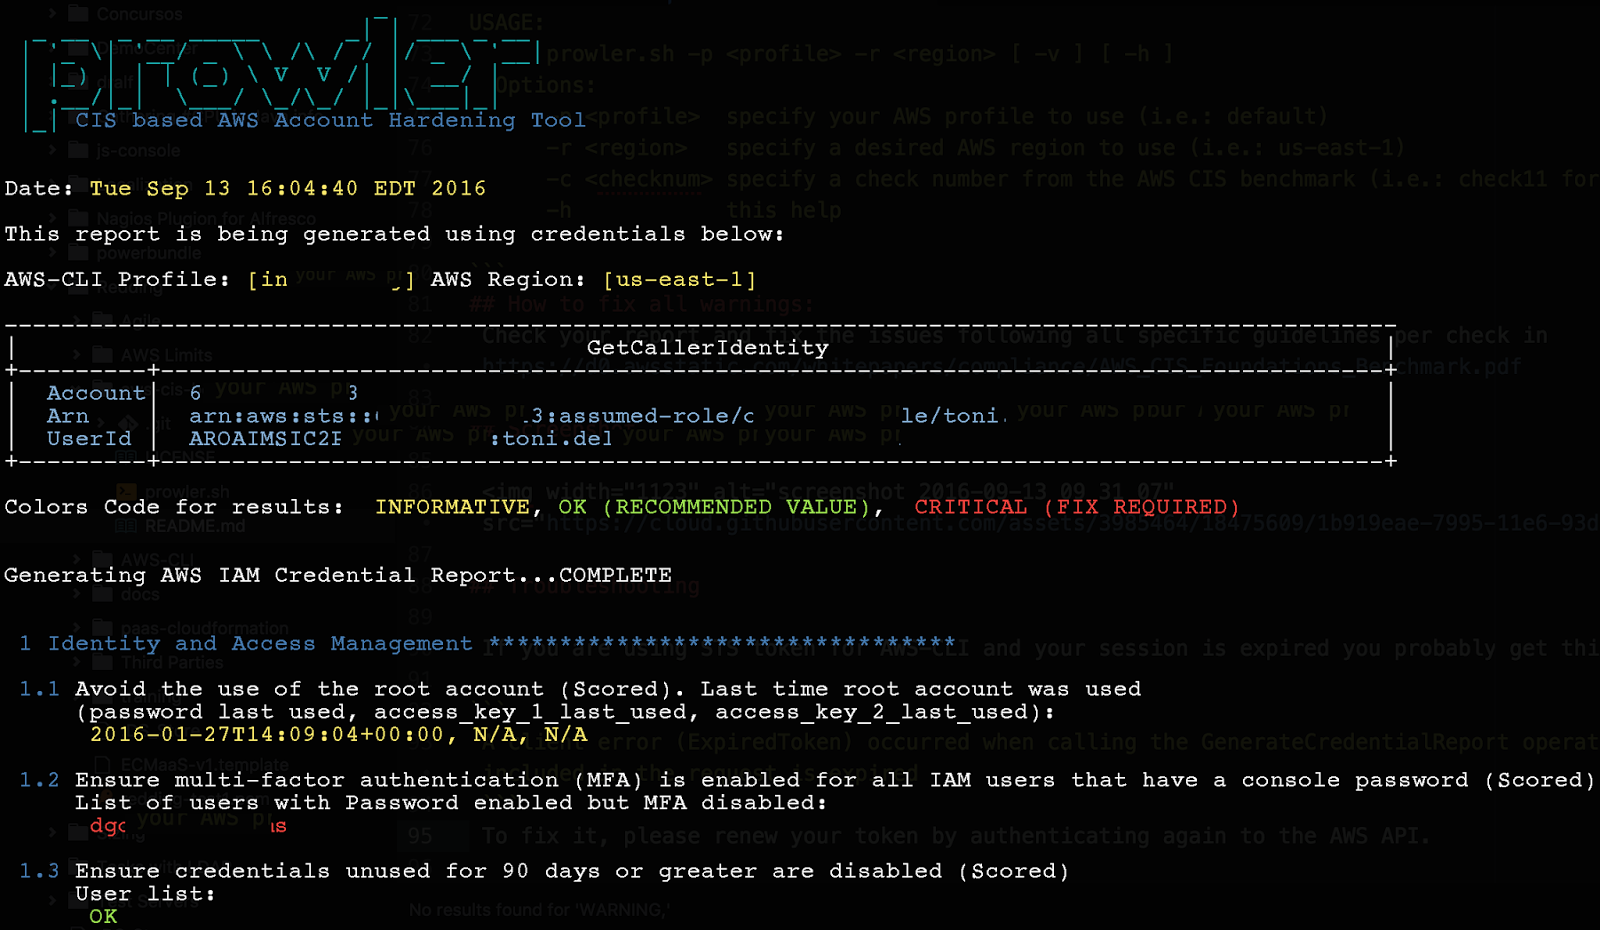 Prowler - Tool for AWS Security Assessment, Auditing And